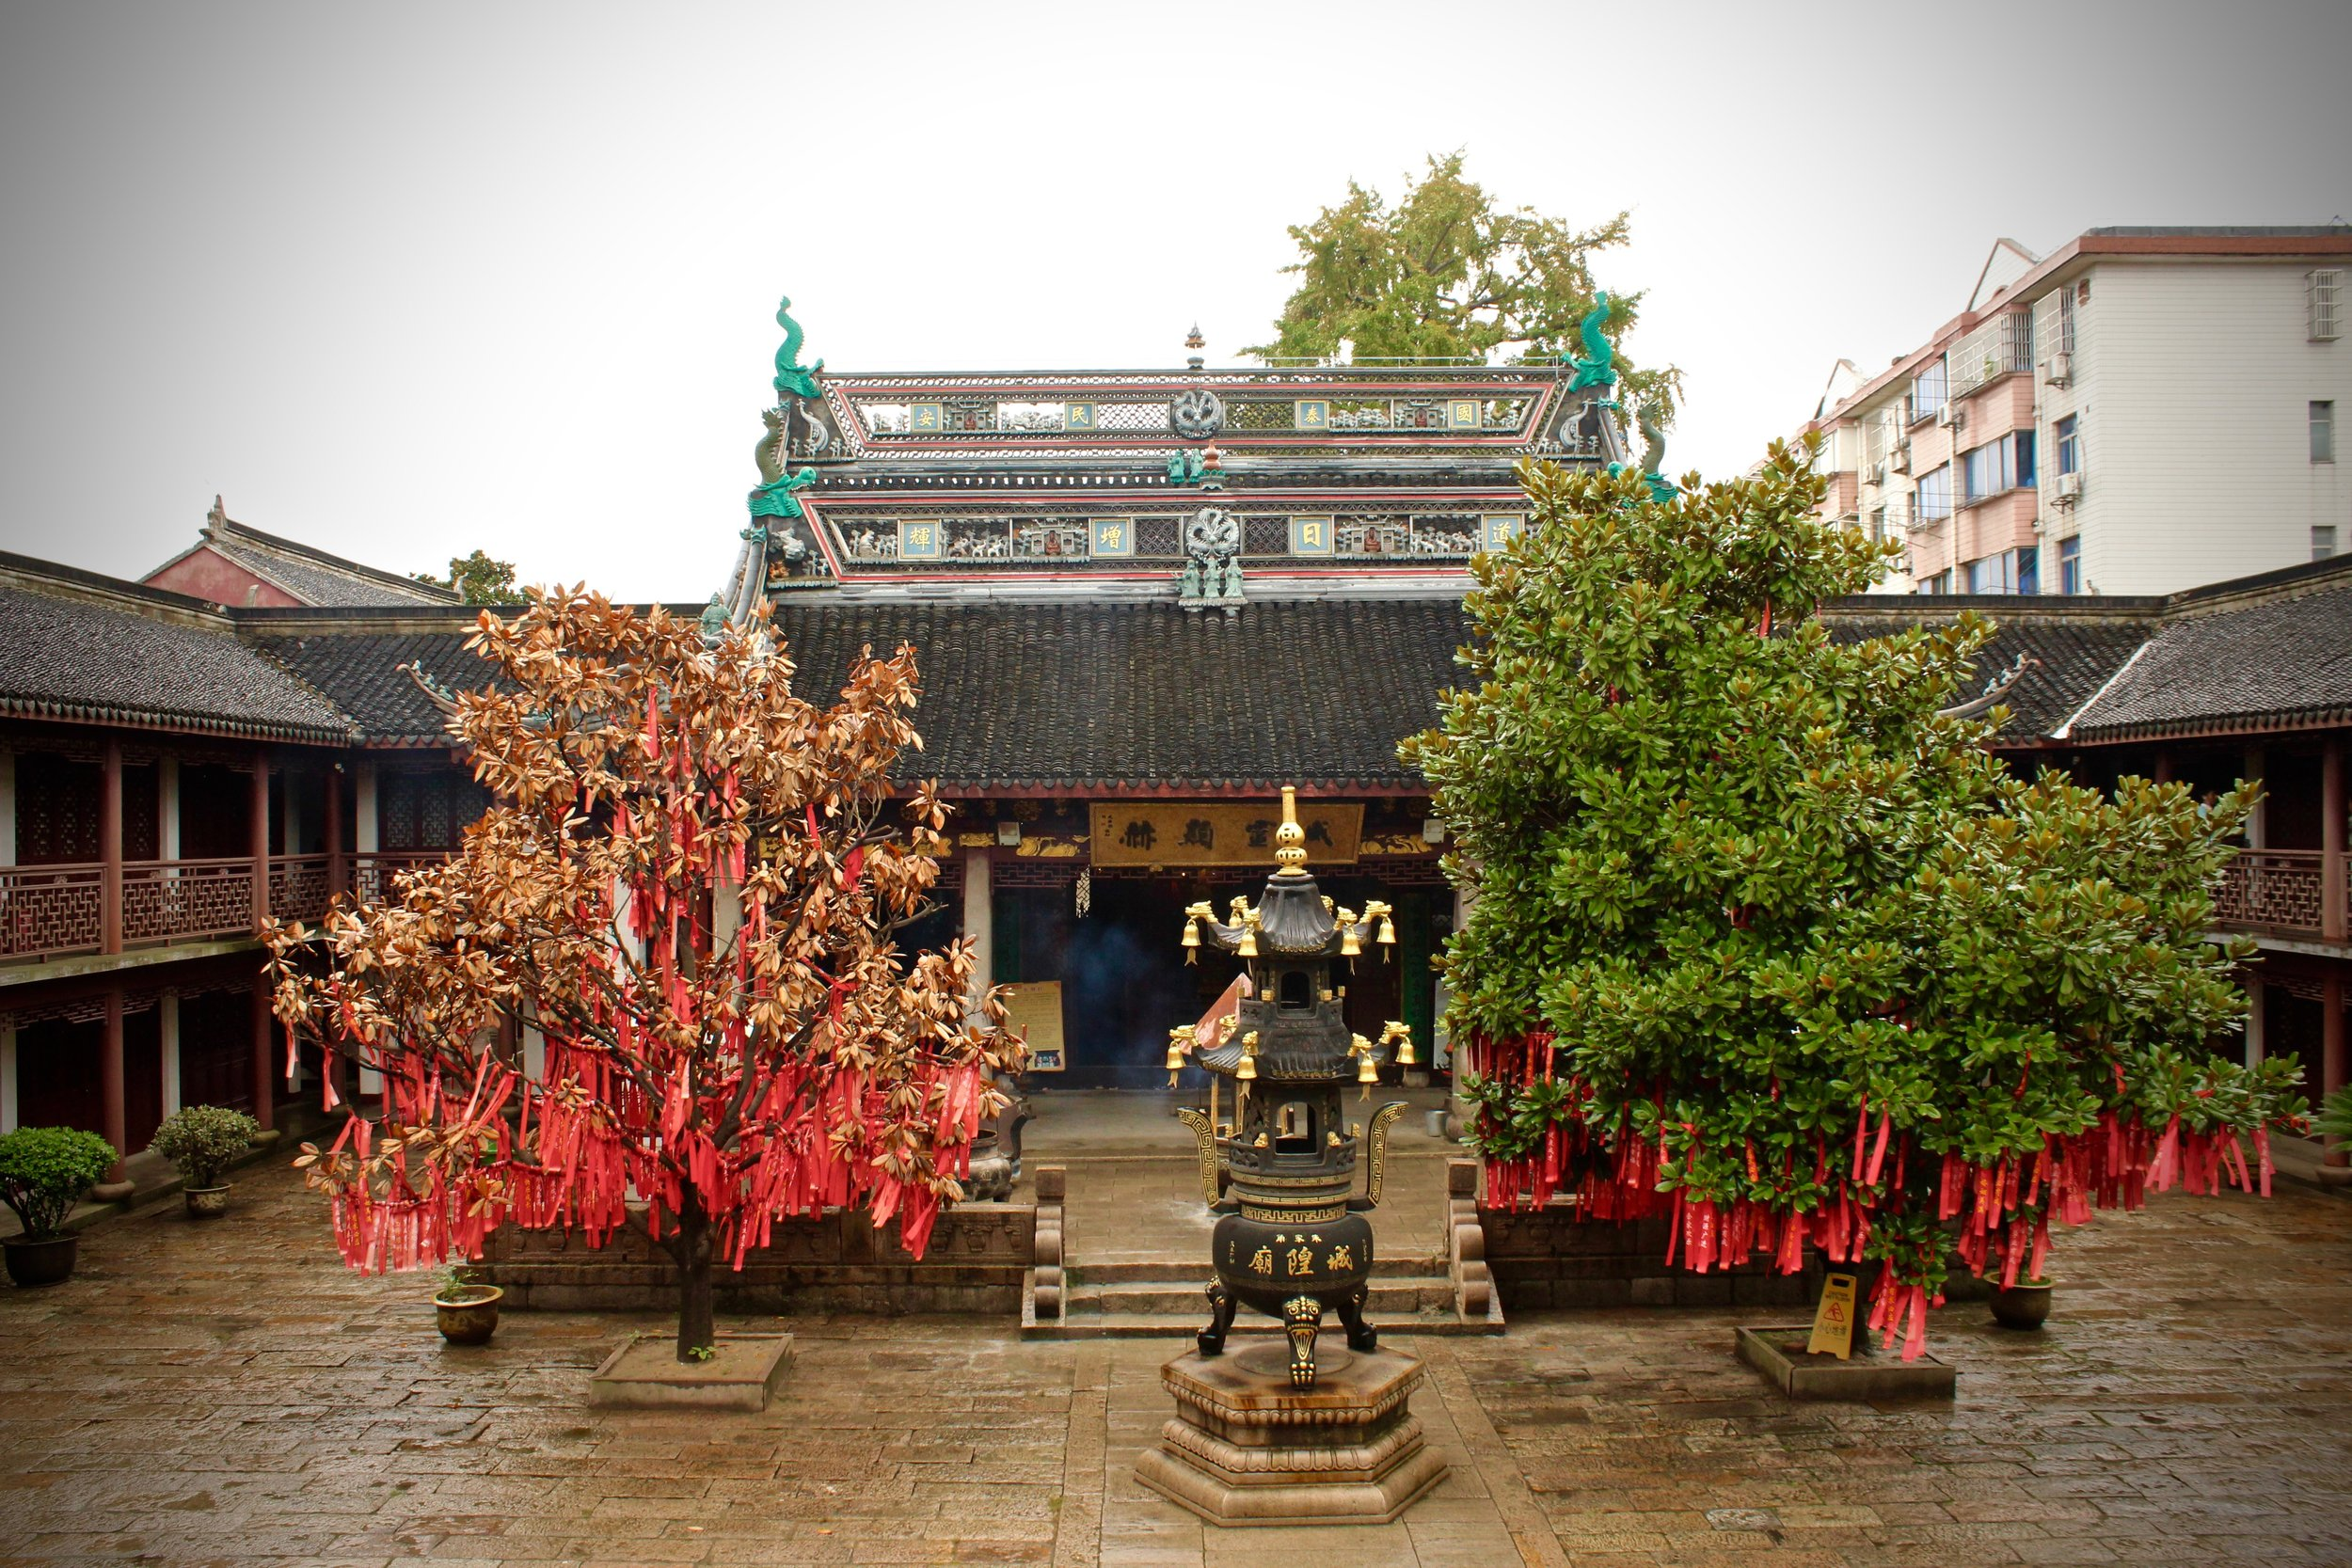 One of the many buddhist temples in Zhujiajiao.